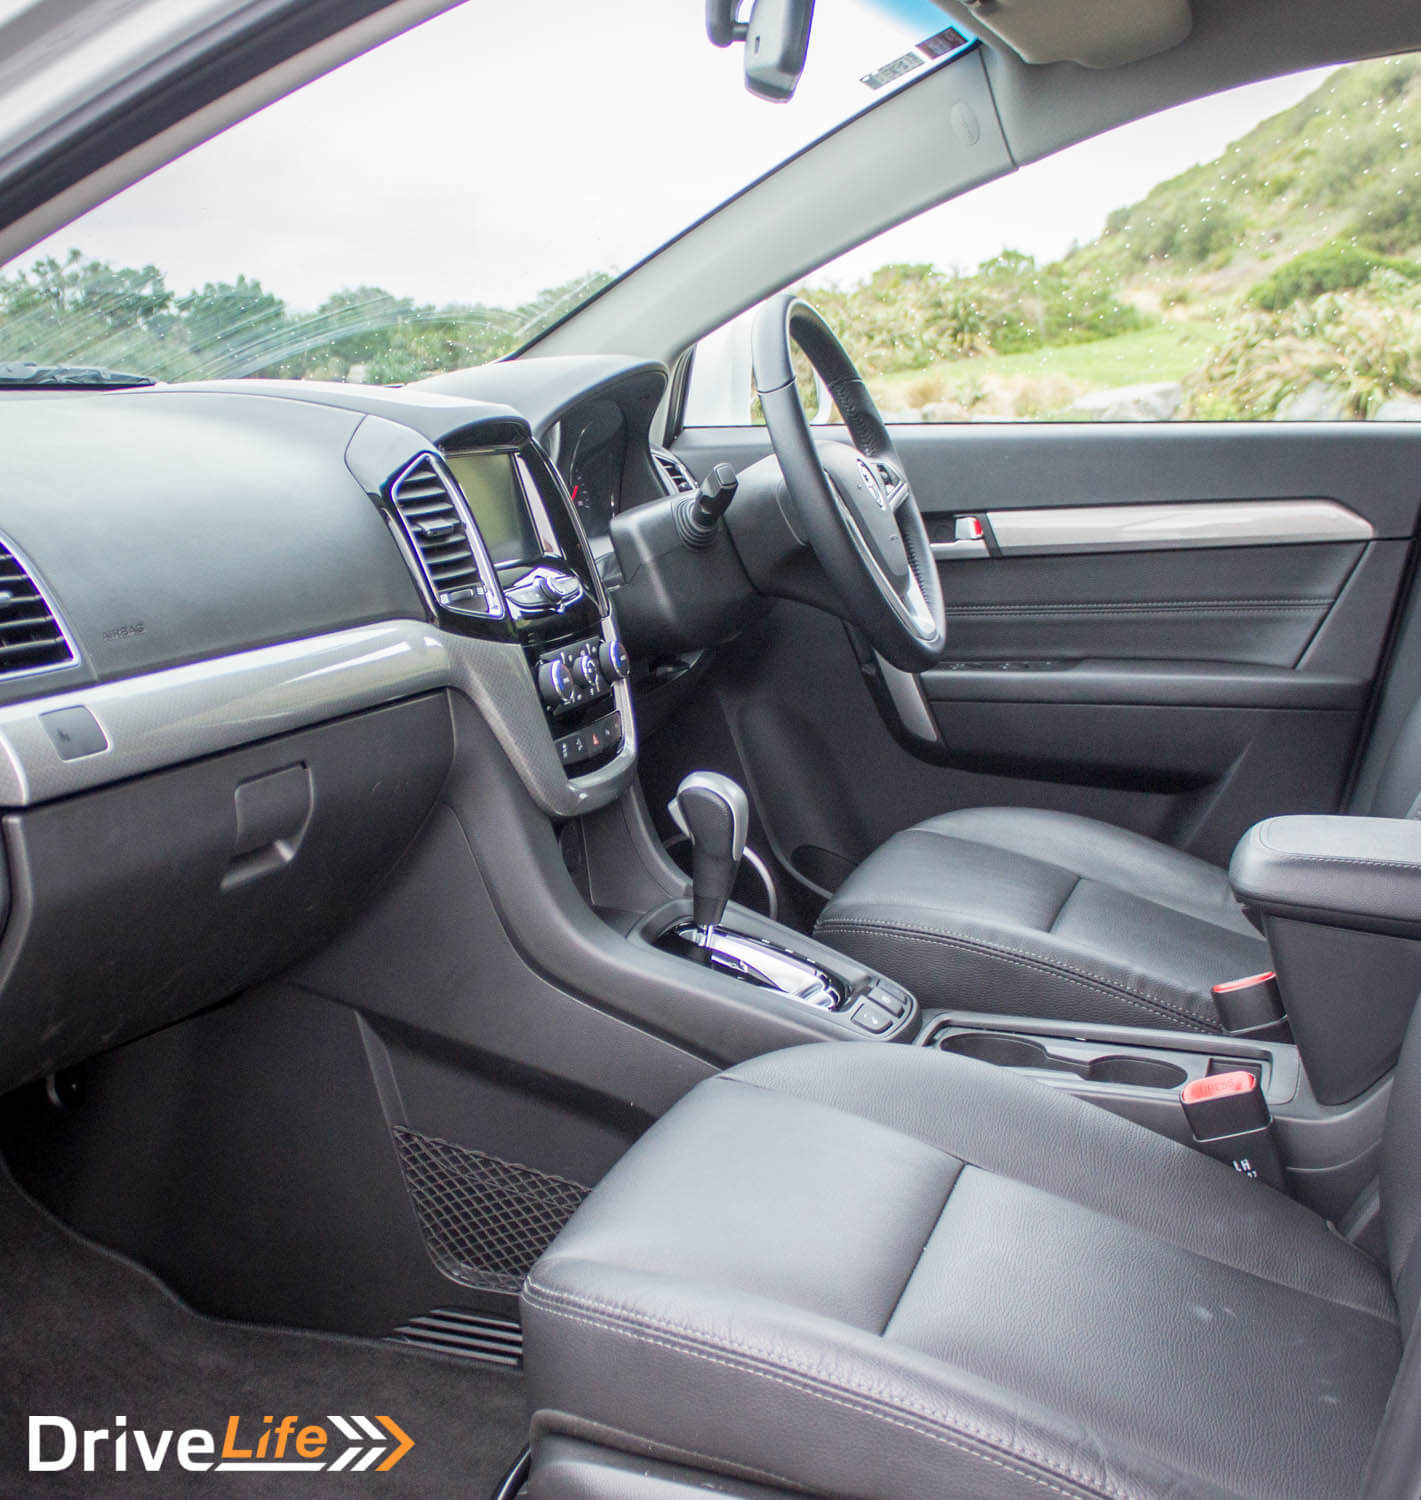 drive-life-nz-car-review-holden-captiva-ltz-2016-18